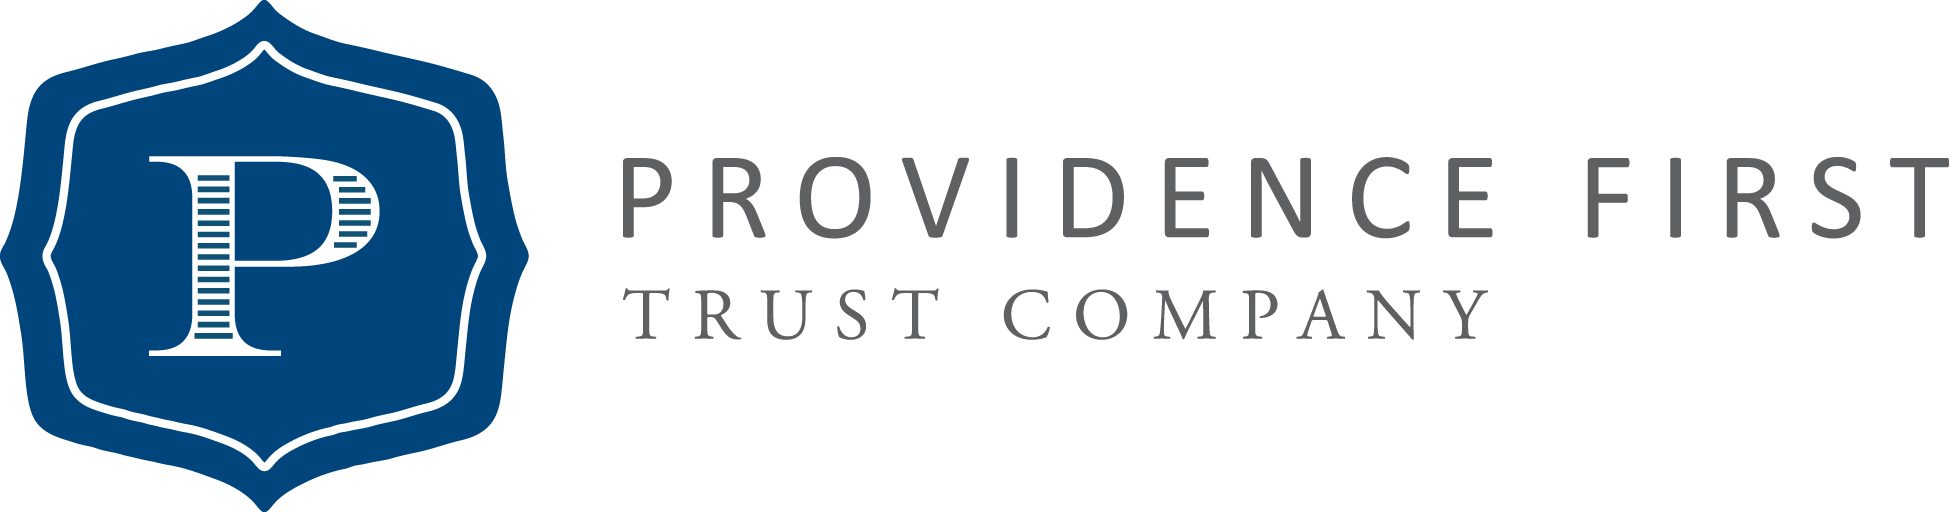 Providence First Trust Company